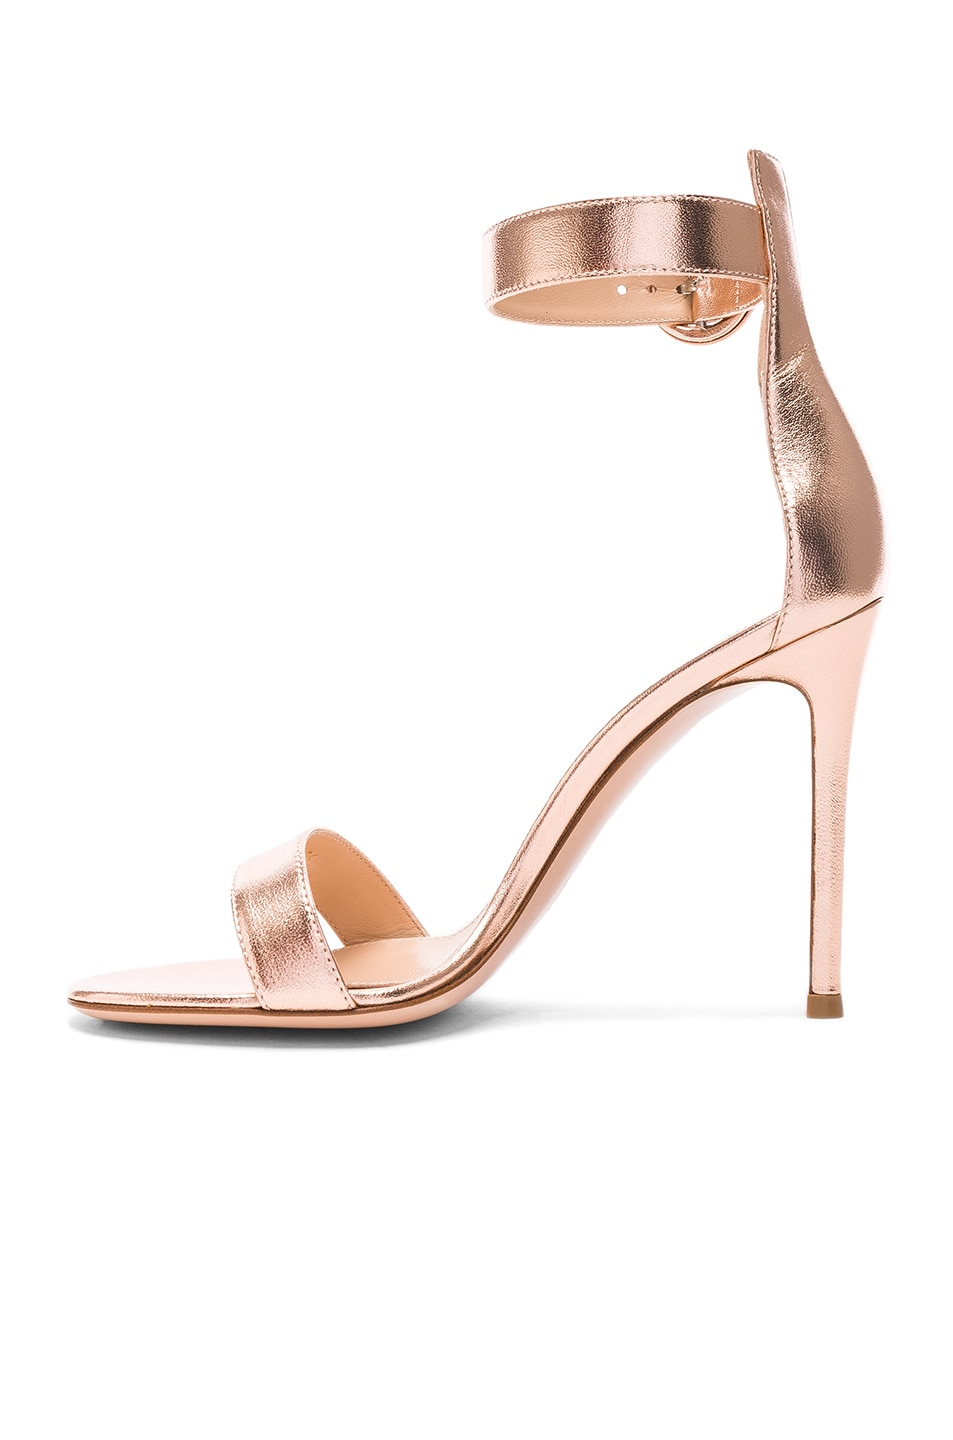 Image 5 of Gianvito Rossi Metallic Leather Ankle Strap Heels in Praline